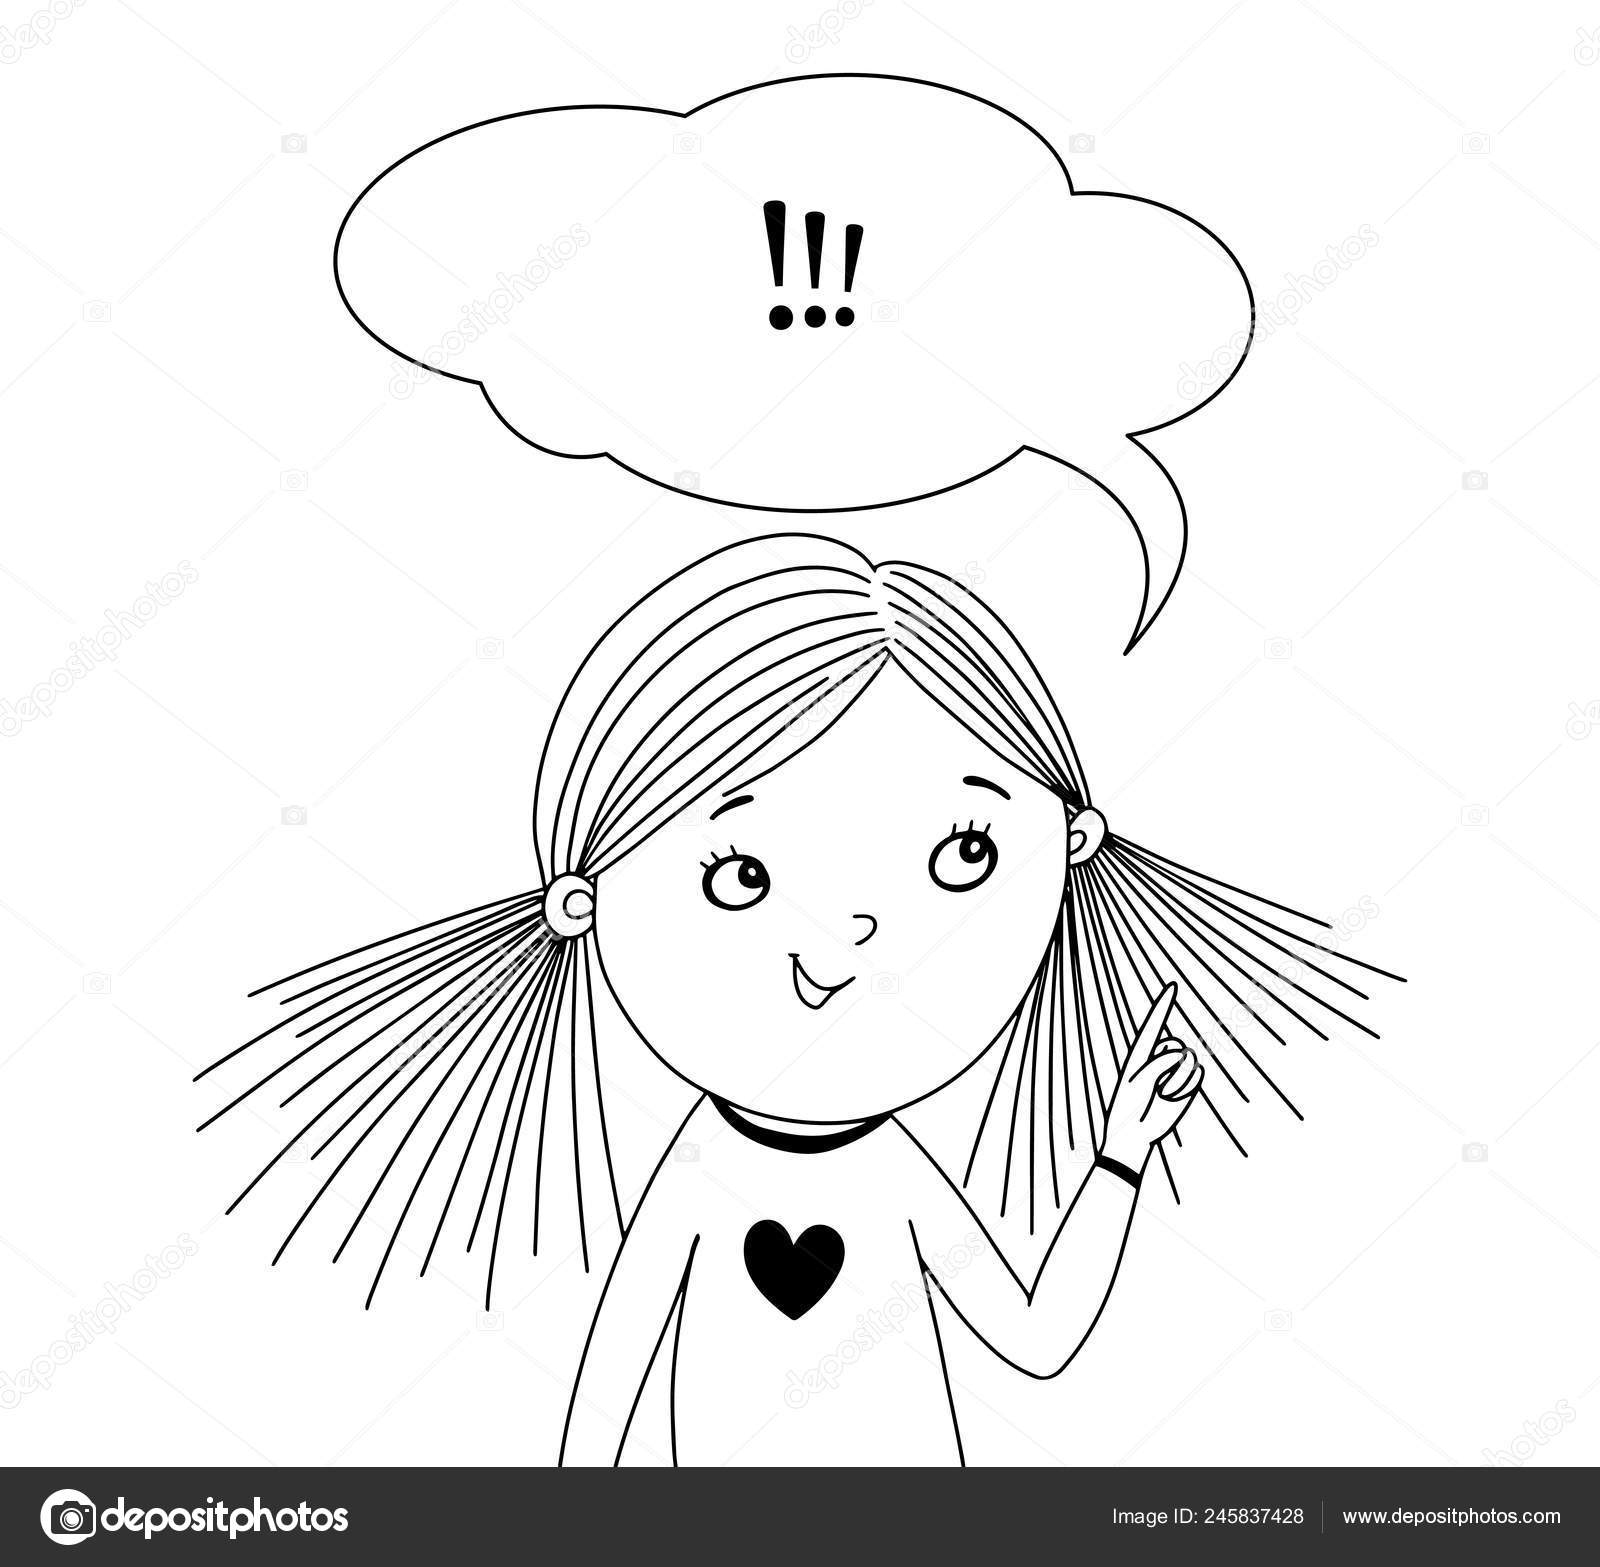 Little girl with a speech bubble. Black and white